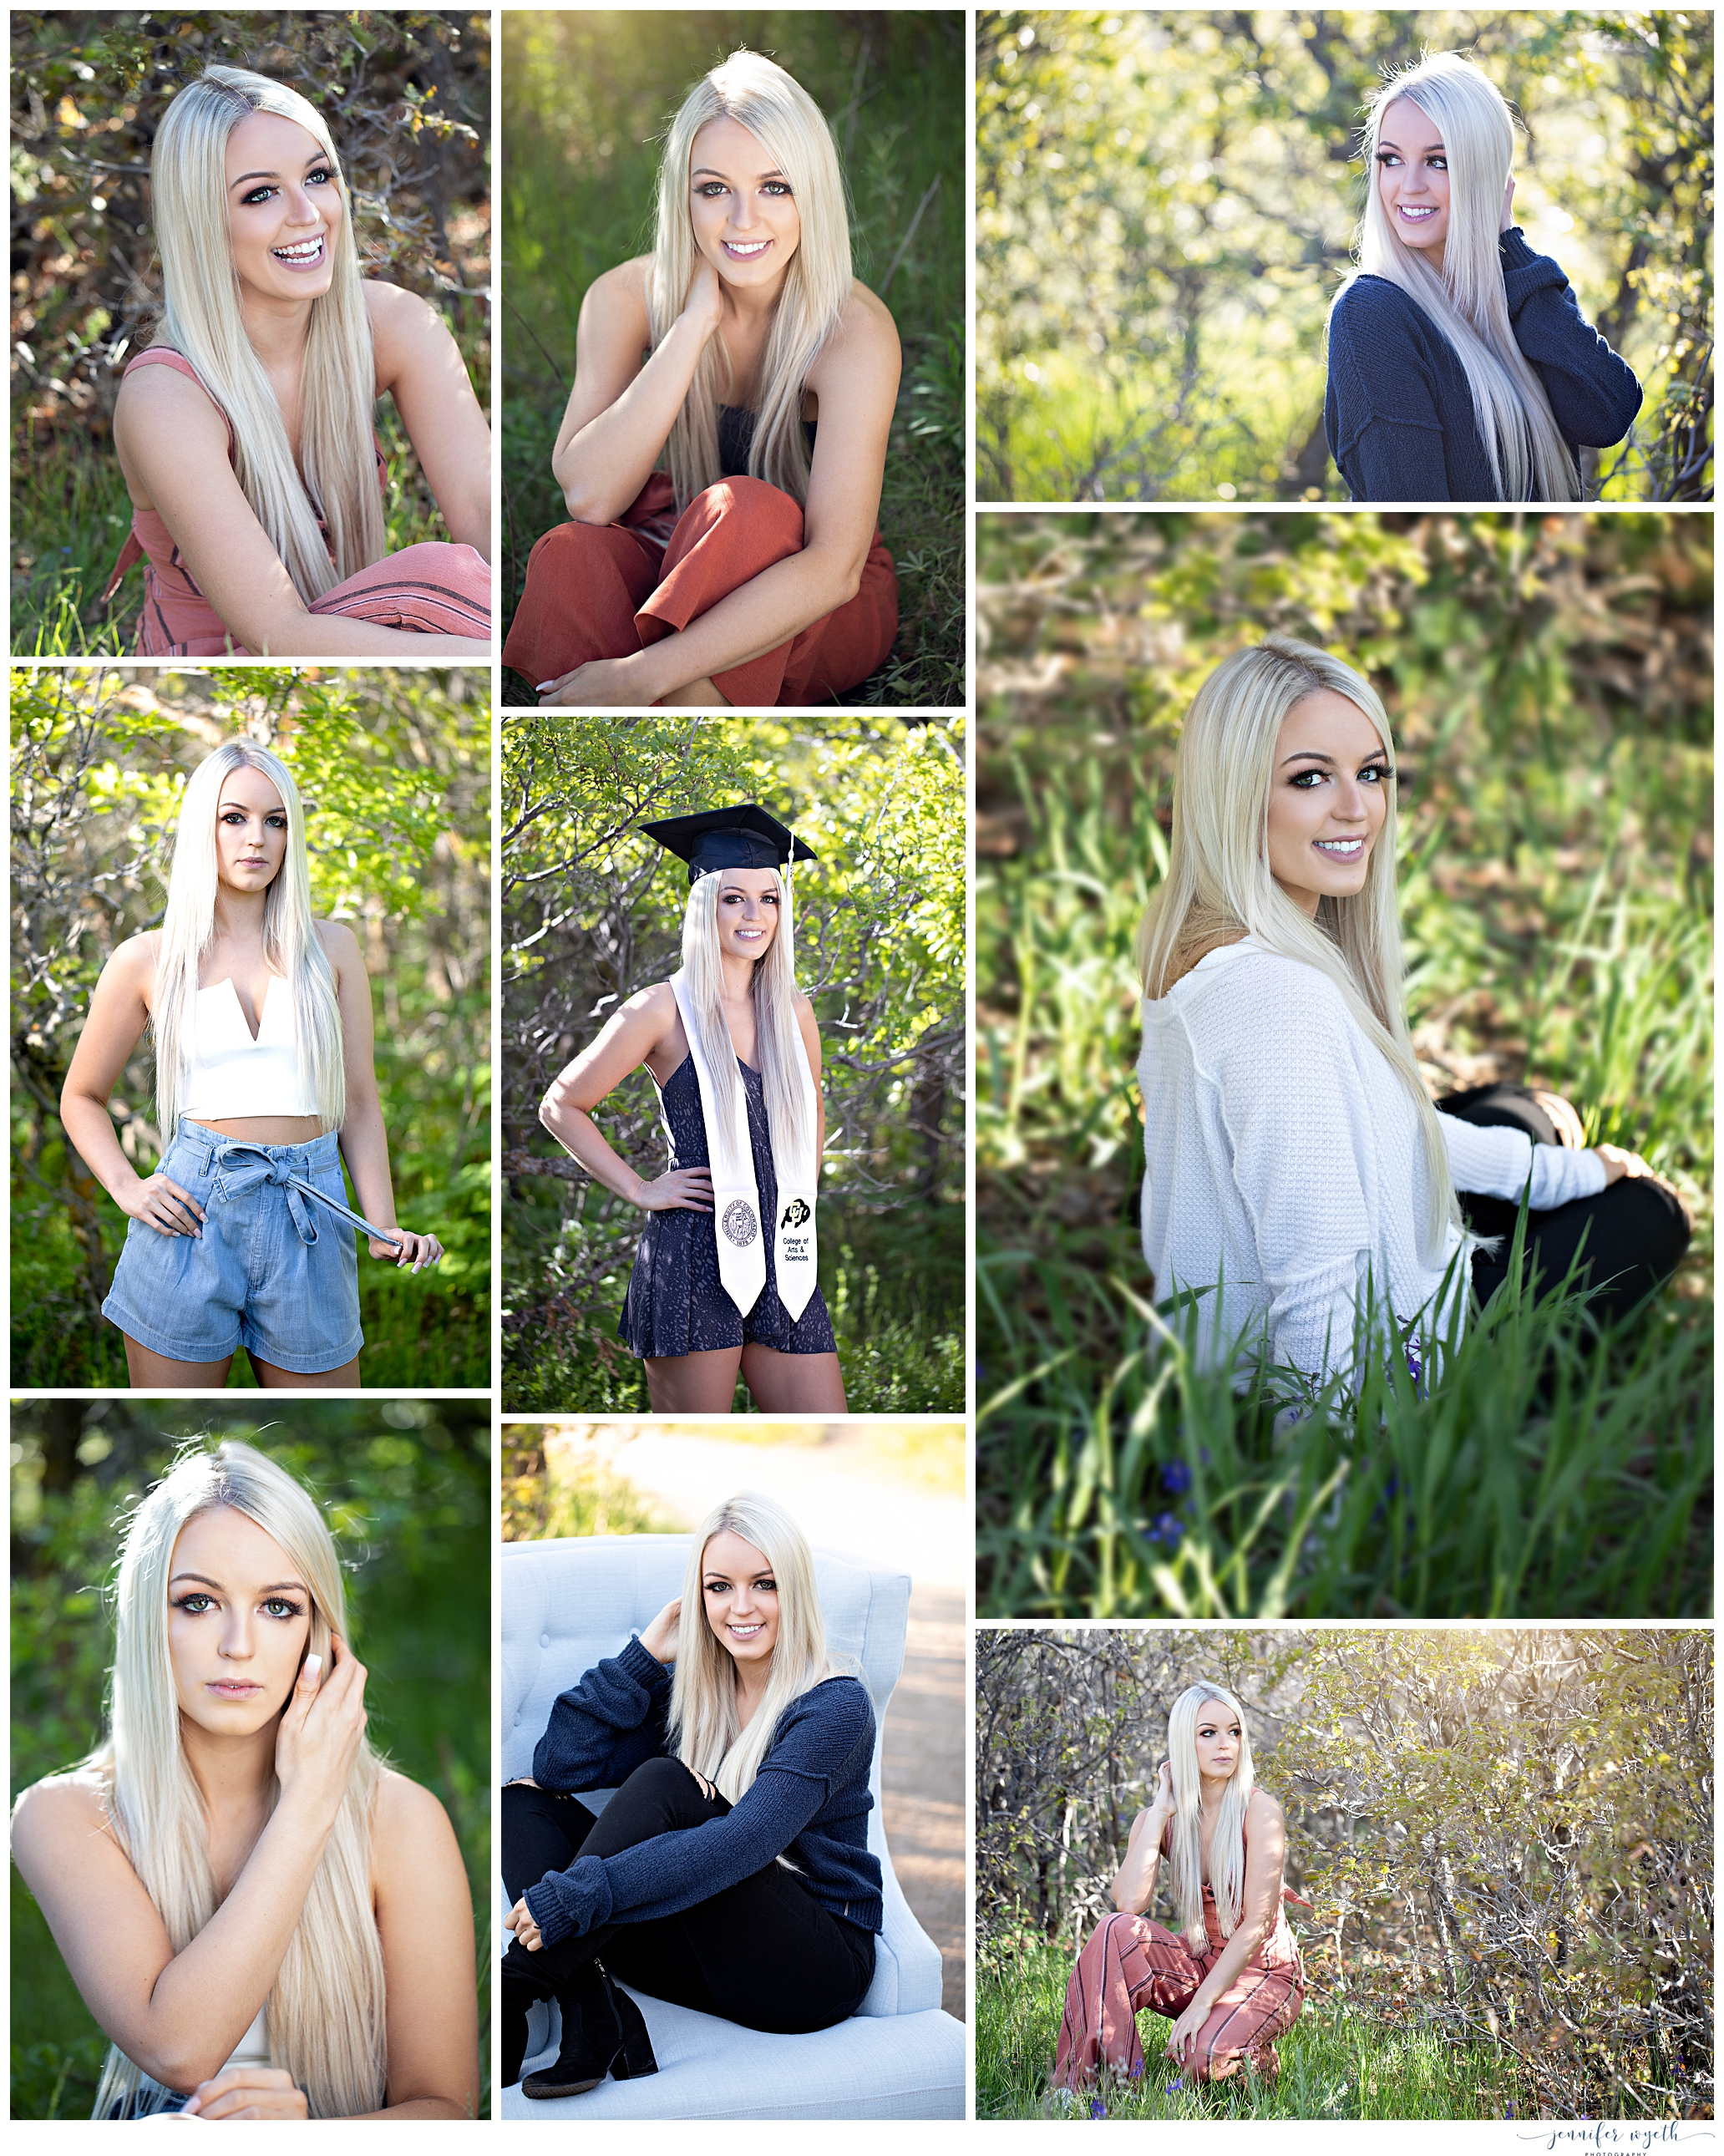 Jennifer-Wyeth-photography-senior-pictures-colorado-springs-photographer_0304.jpg